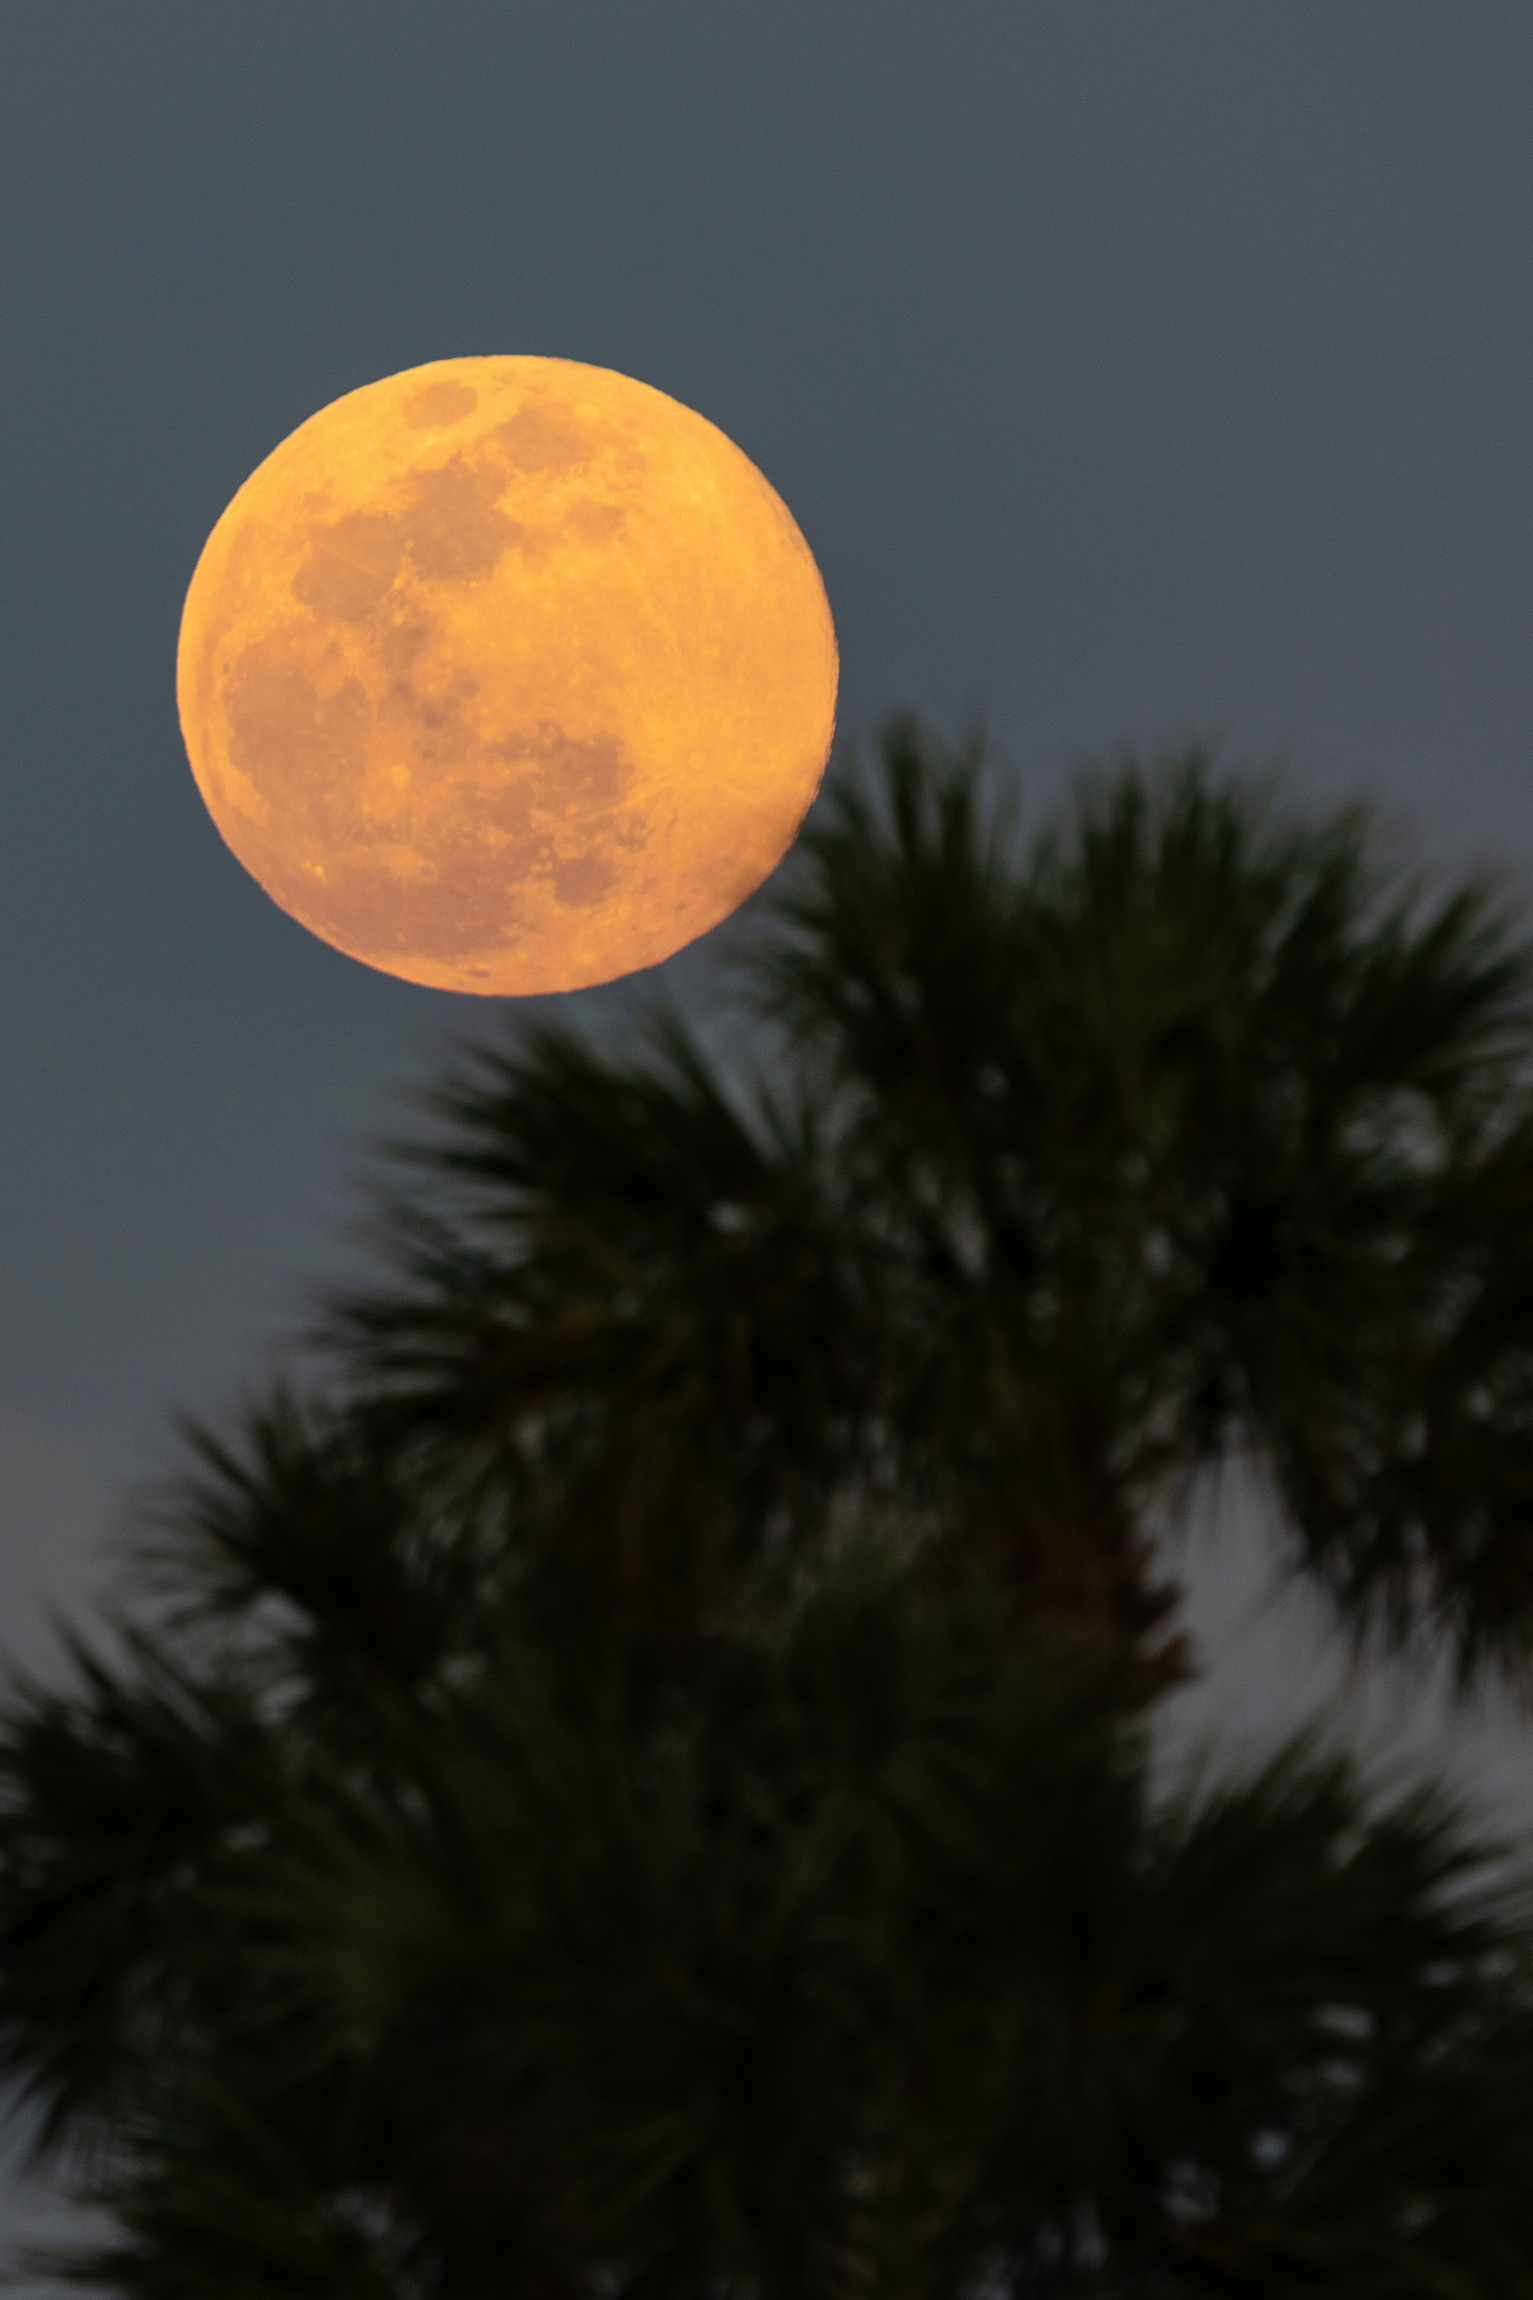 #supermoon, #moonrise, #sony, #luminar, #sonyalpha, #reallyrightstuff, #naturephotography, #sky, #outdoorphotography, #florida, #naplesflorida